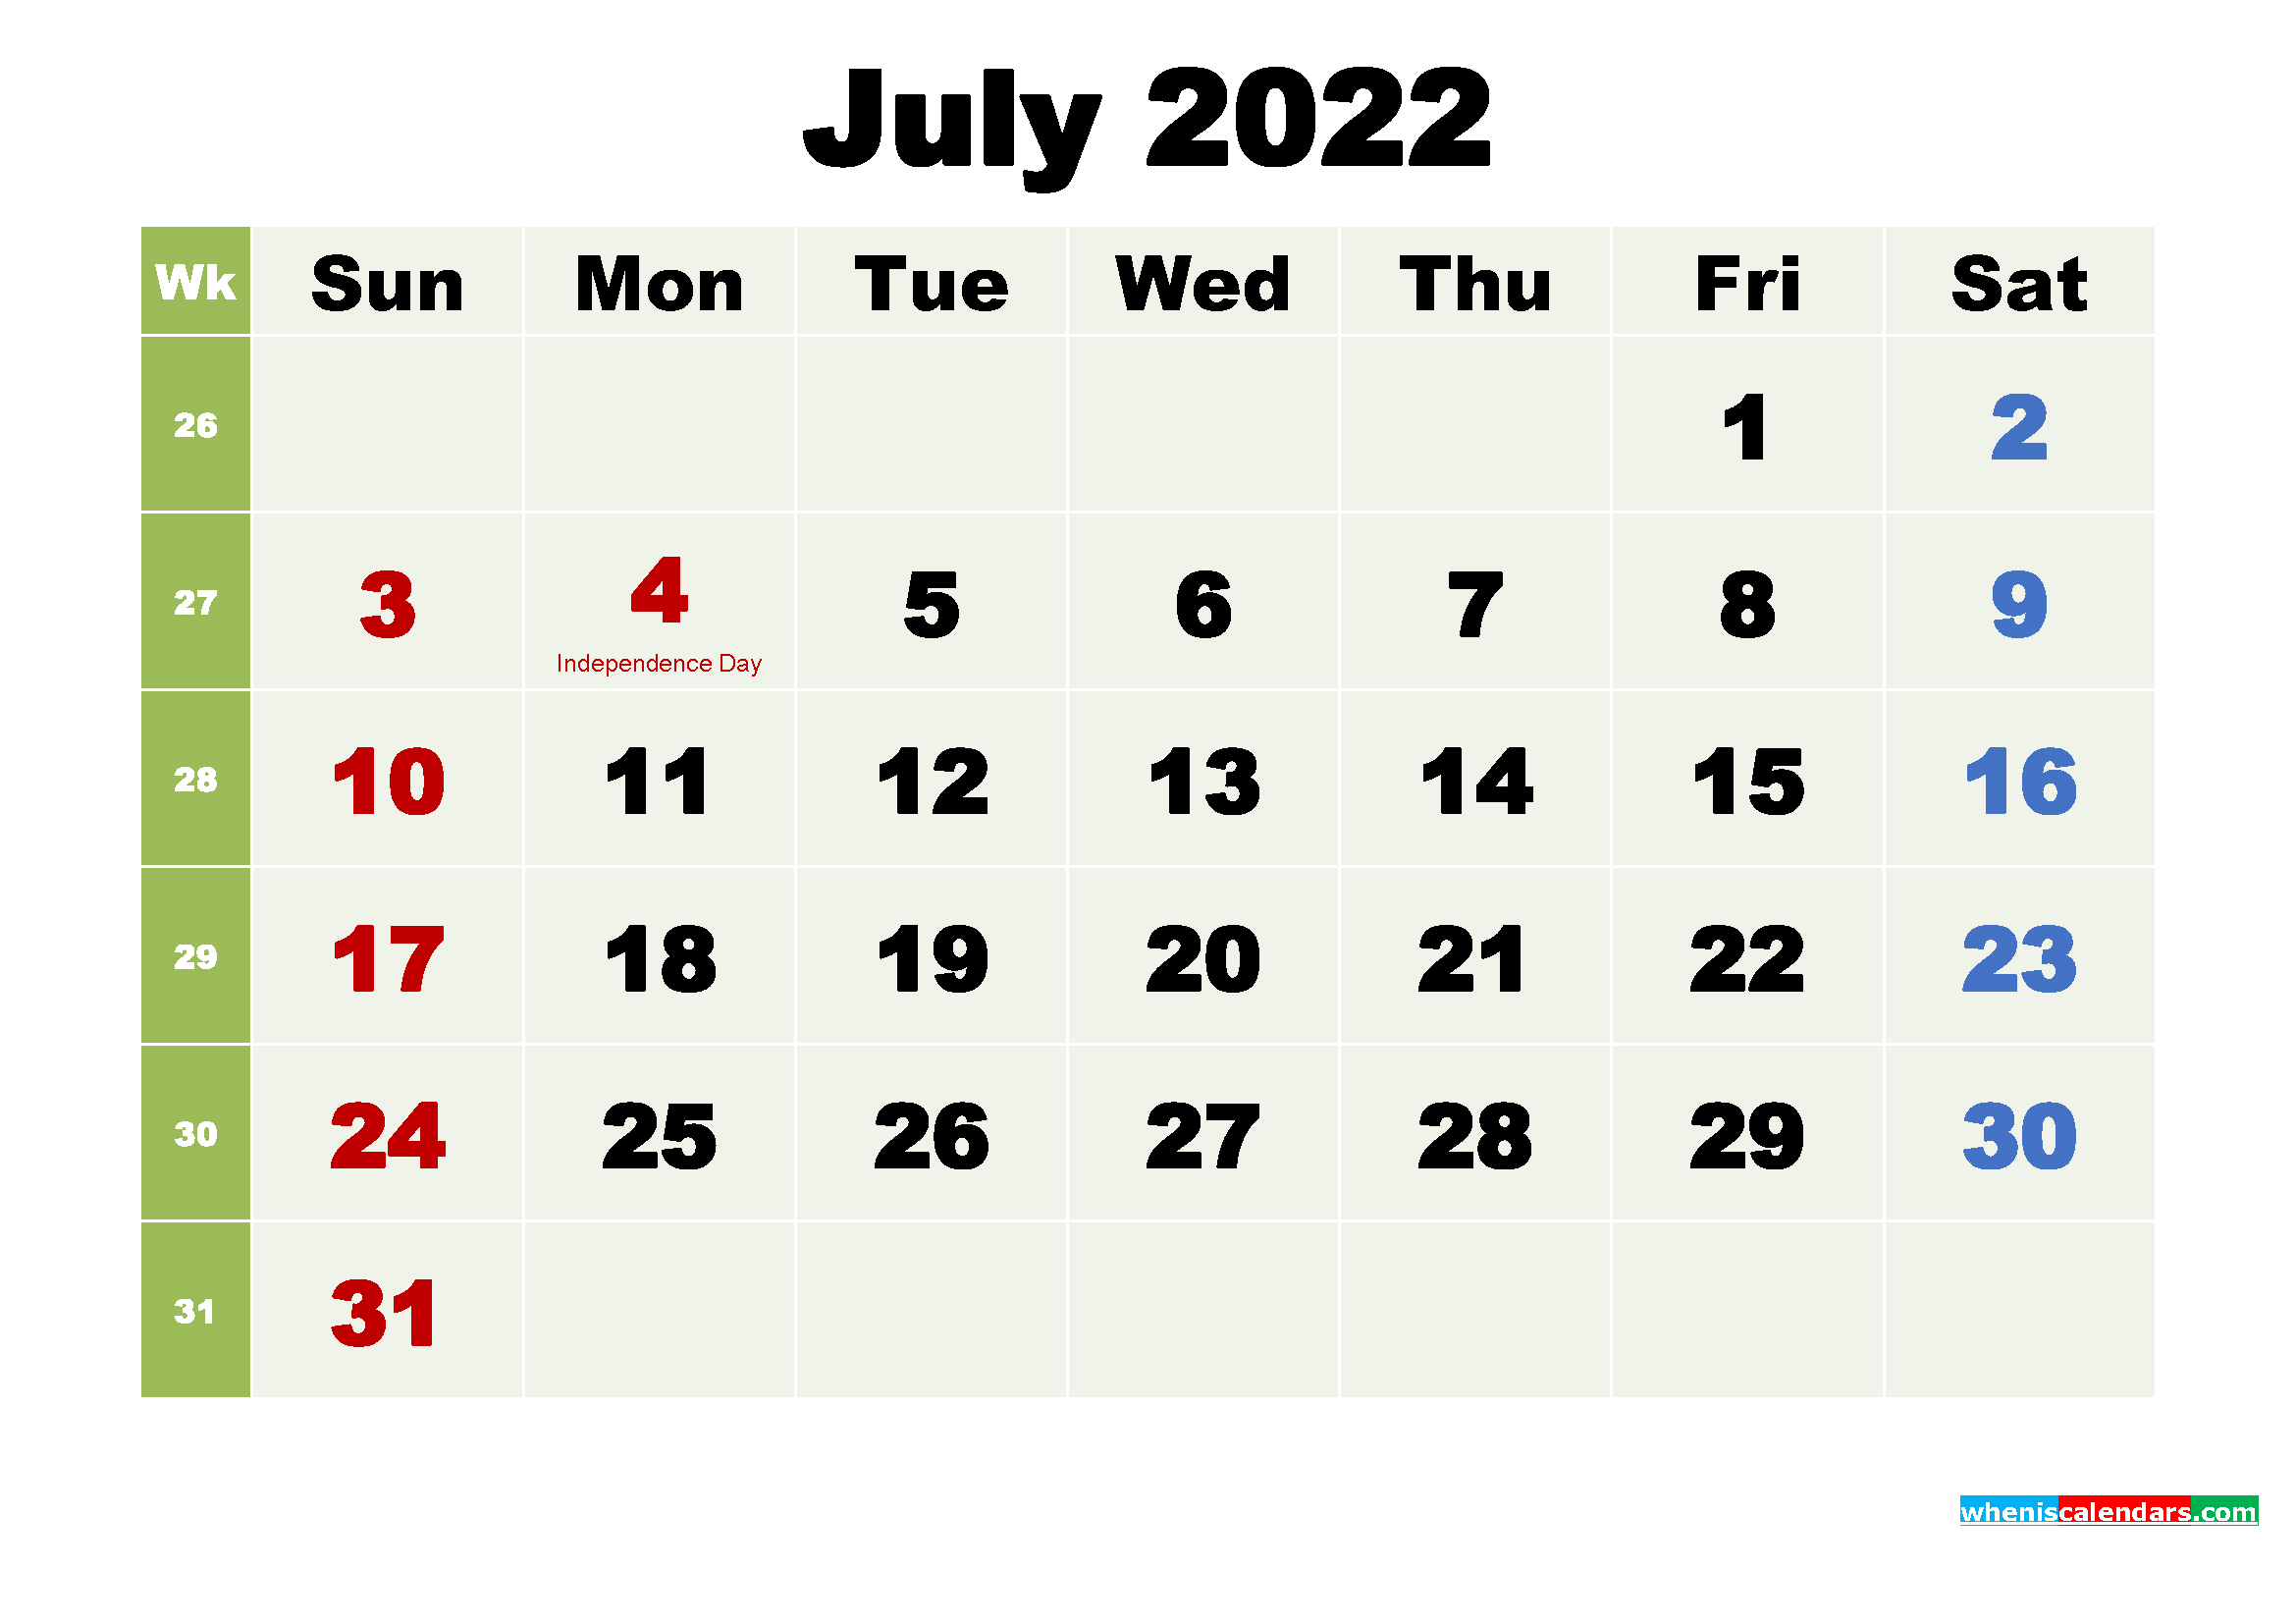 Printable July 2022 Calendar by Month